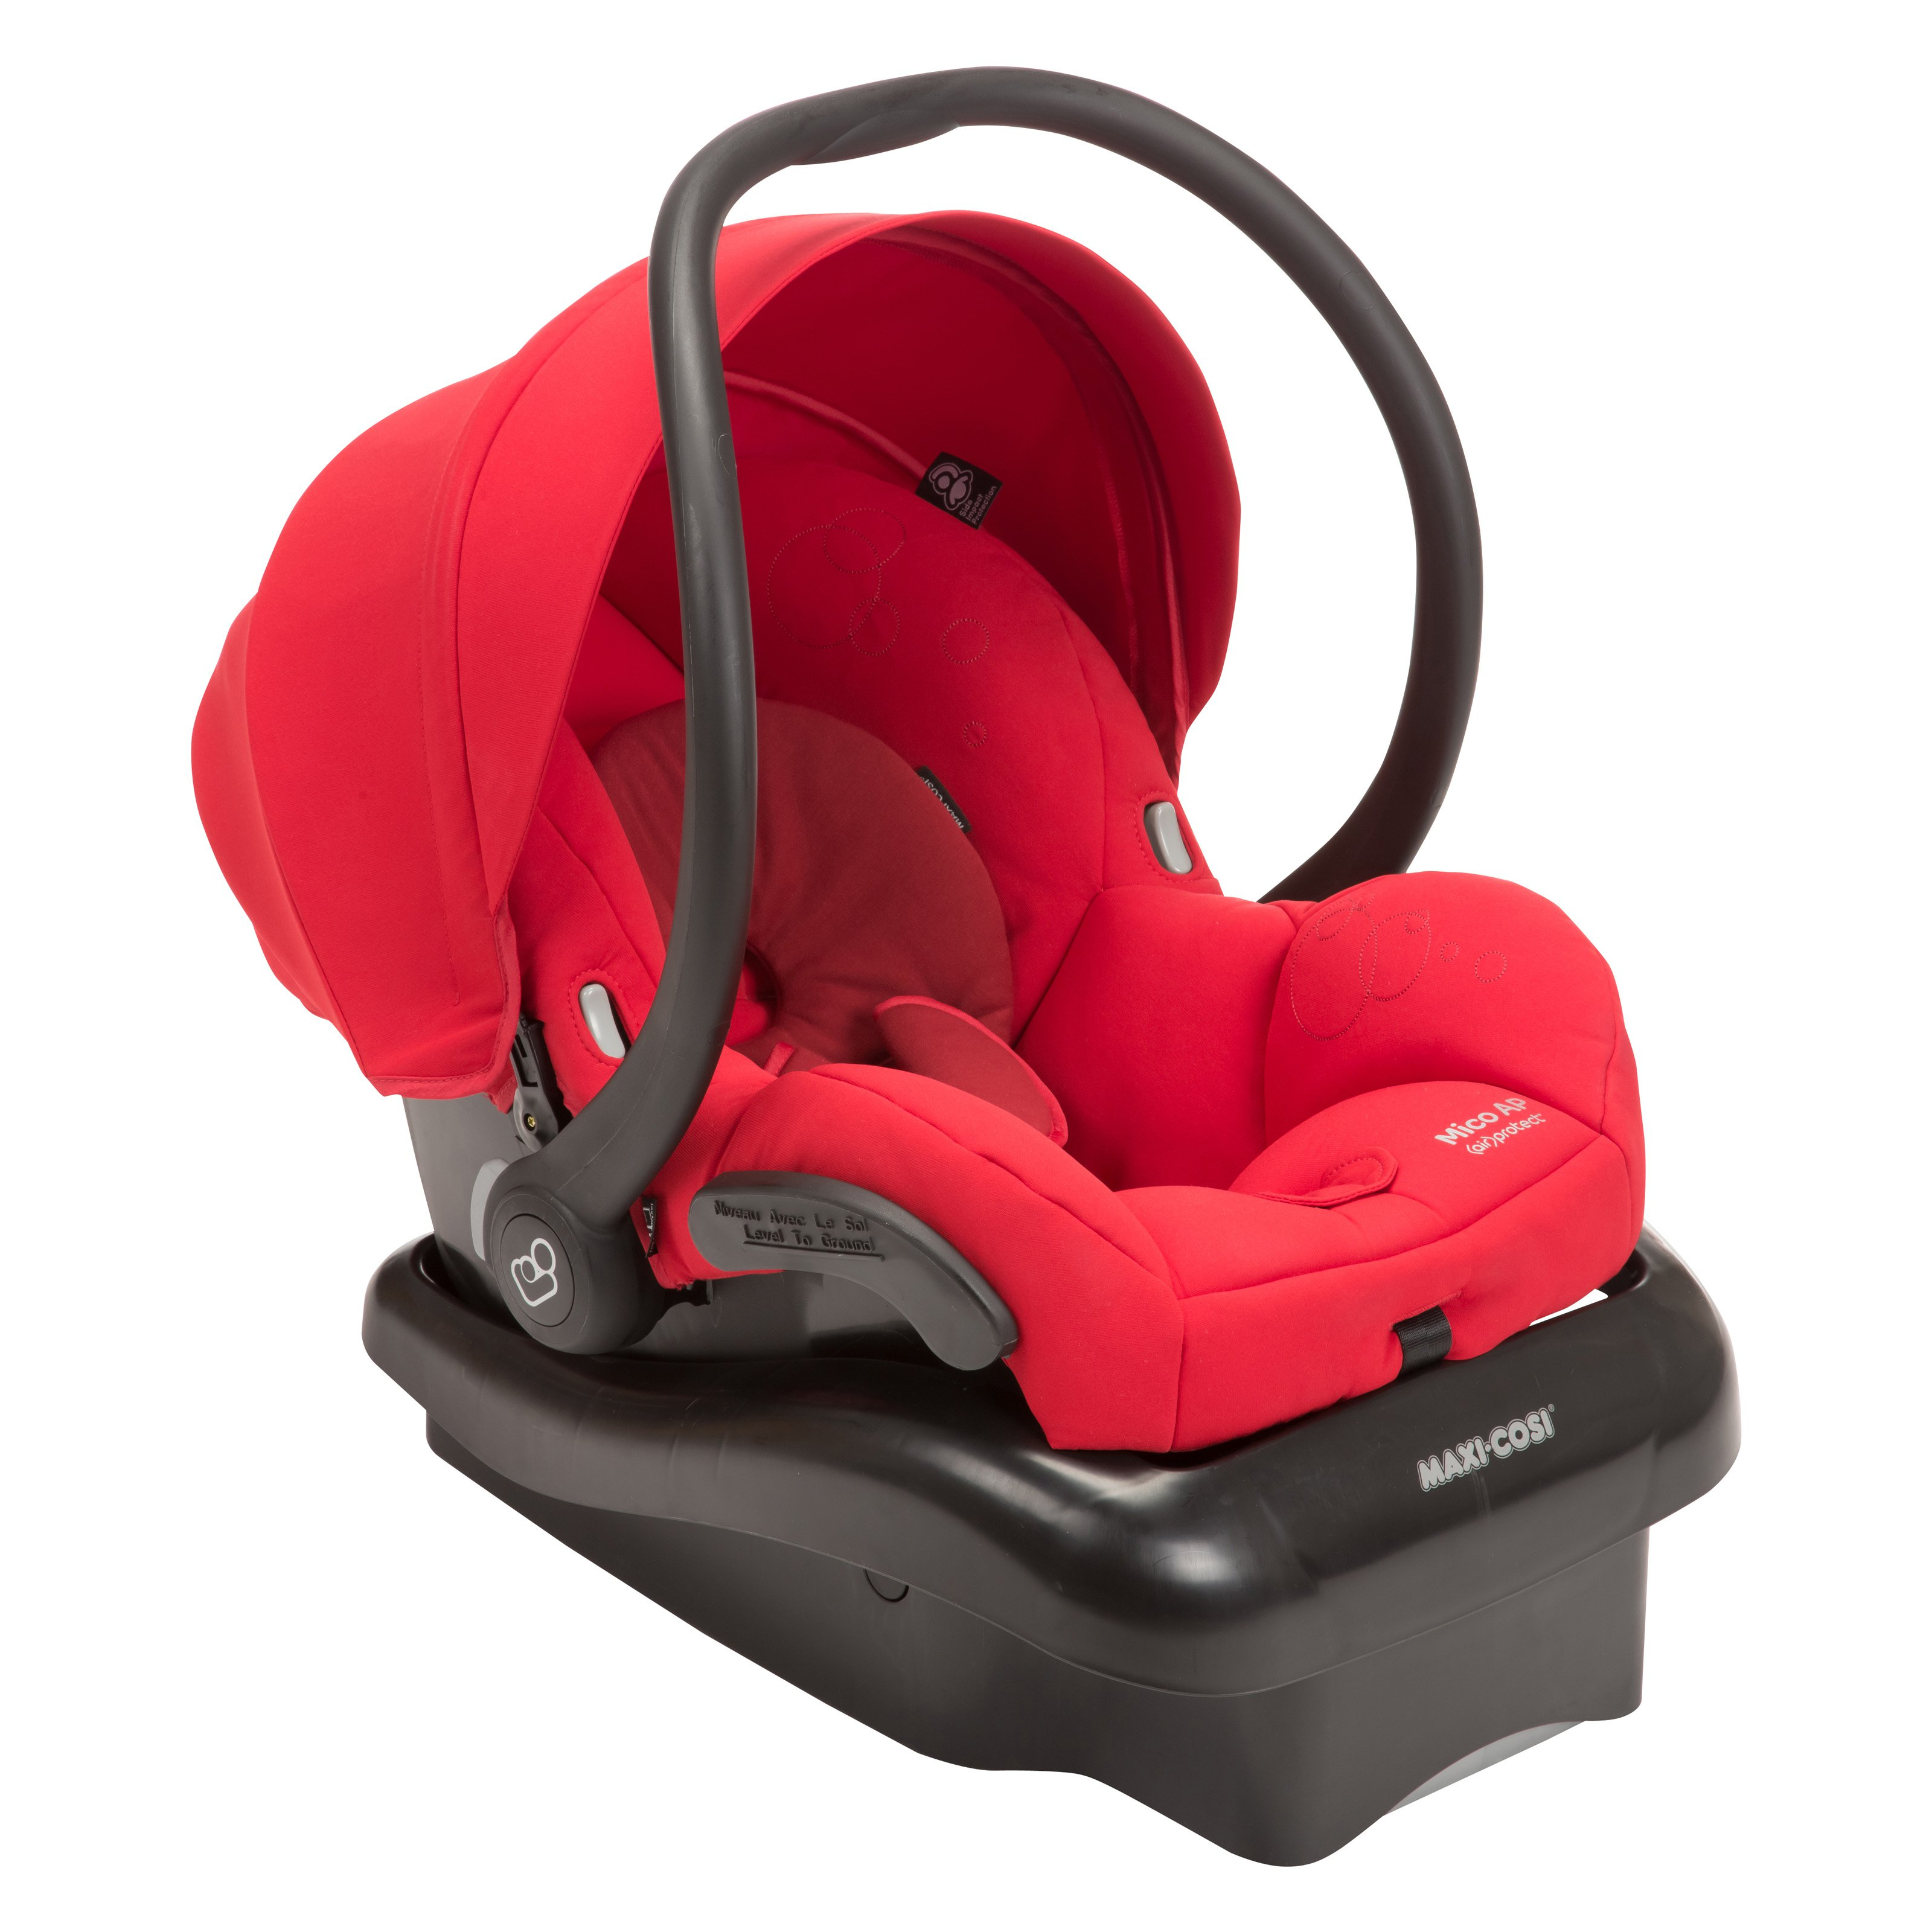 Maxi-Cosi Mico AP Infant Car Seat - Envious Red